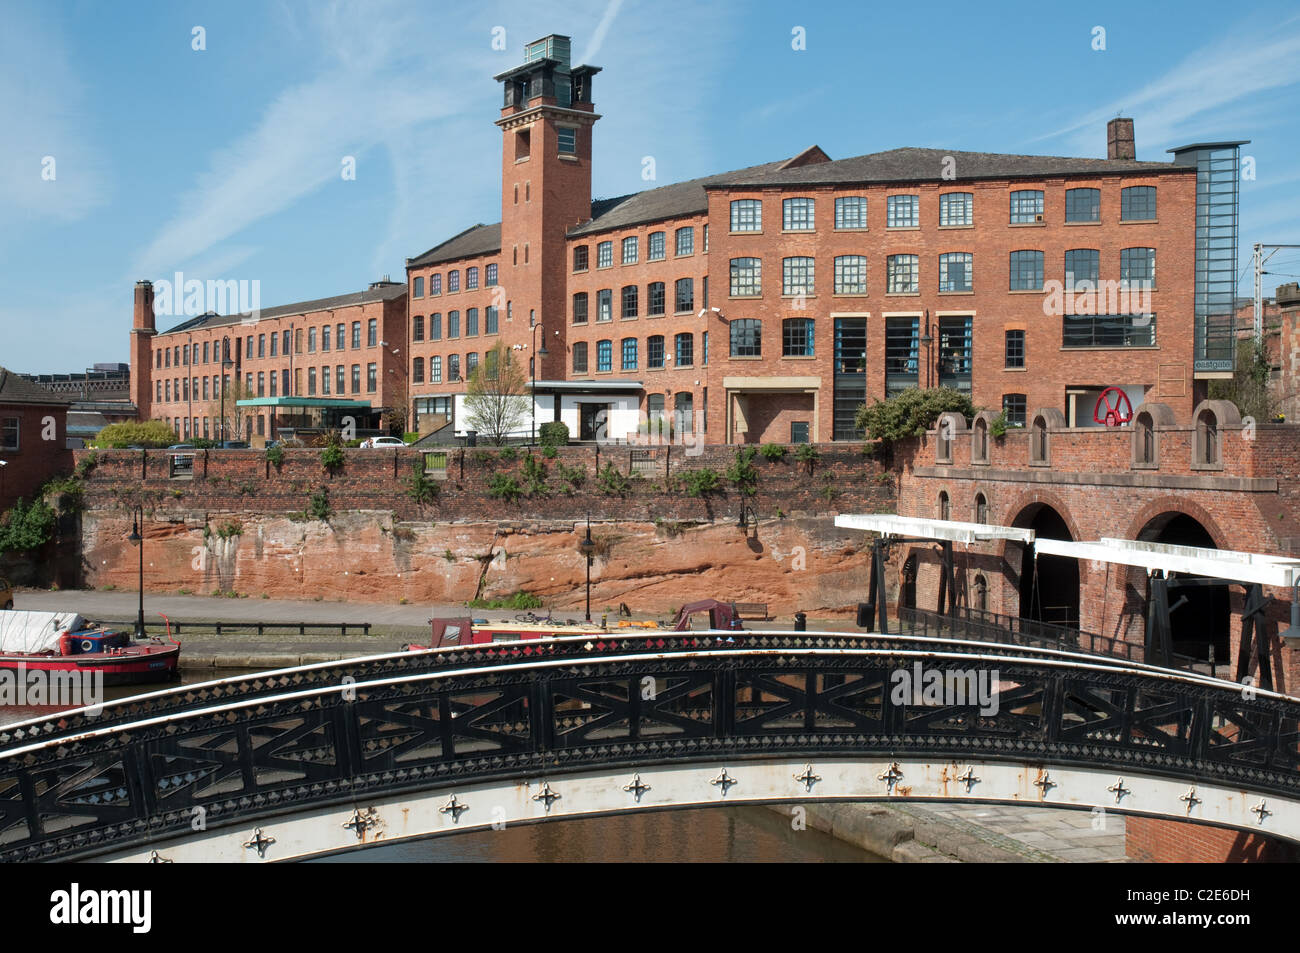 Refurbished offices Bass Warehouse in the Castlefield district of Manchester. - Stock Image